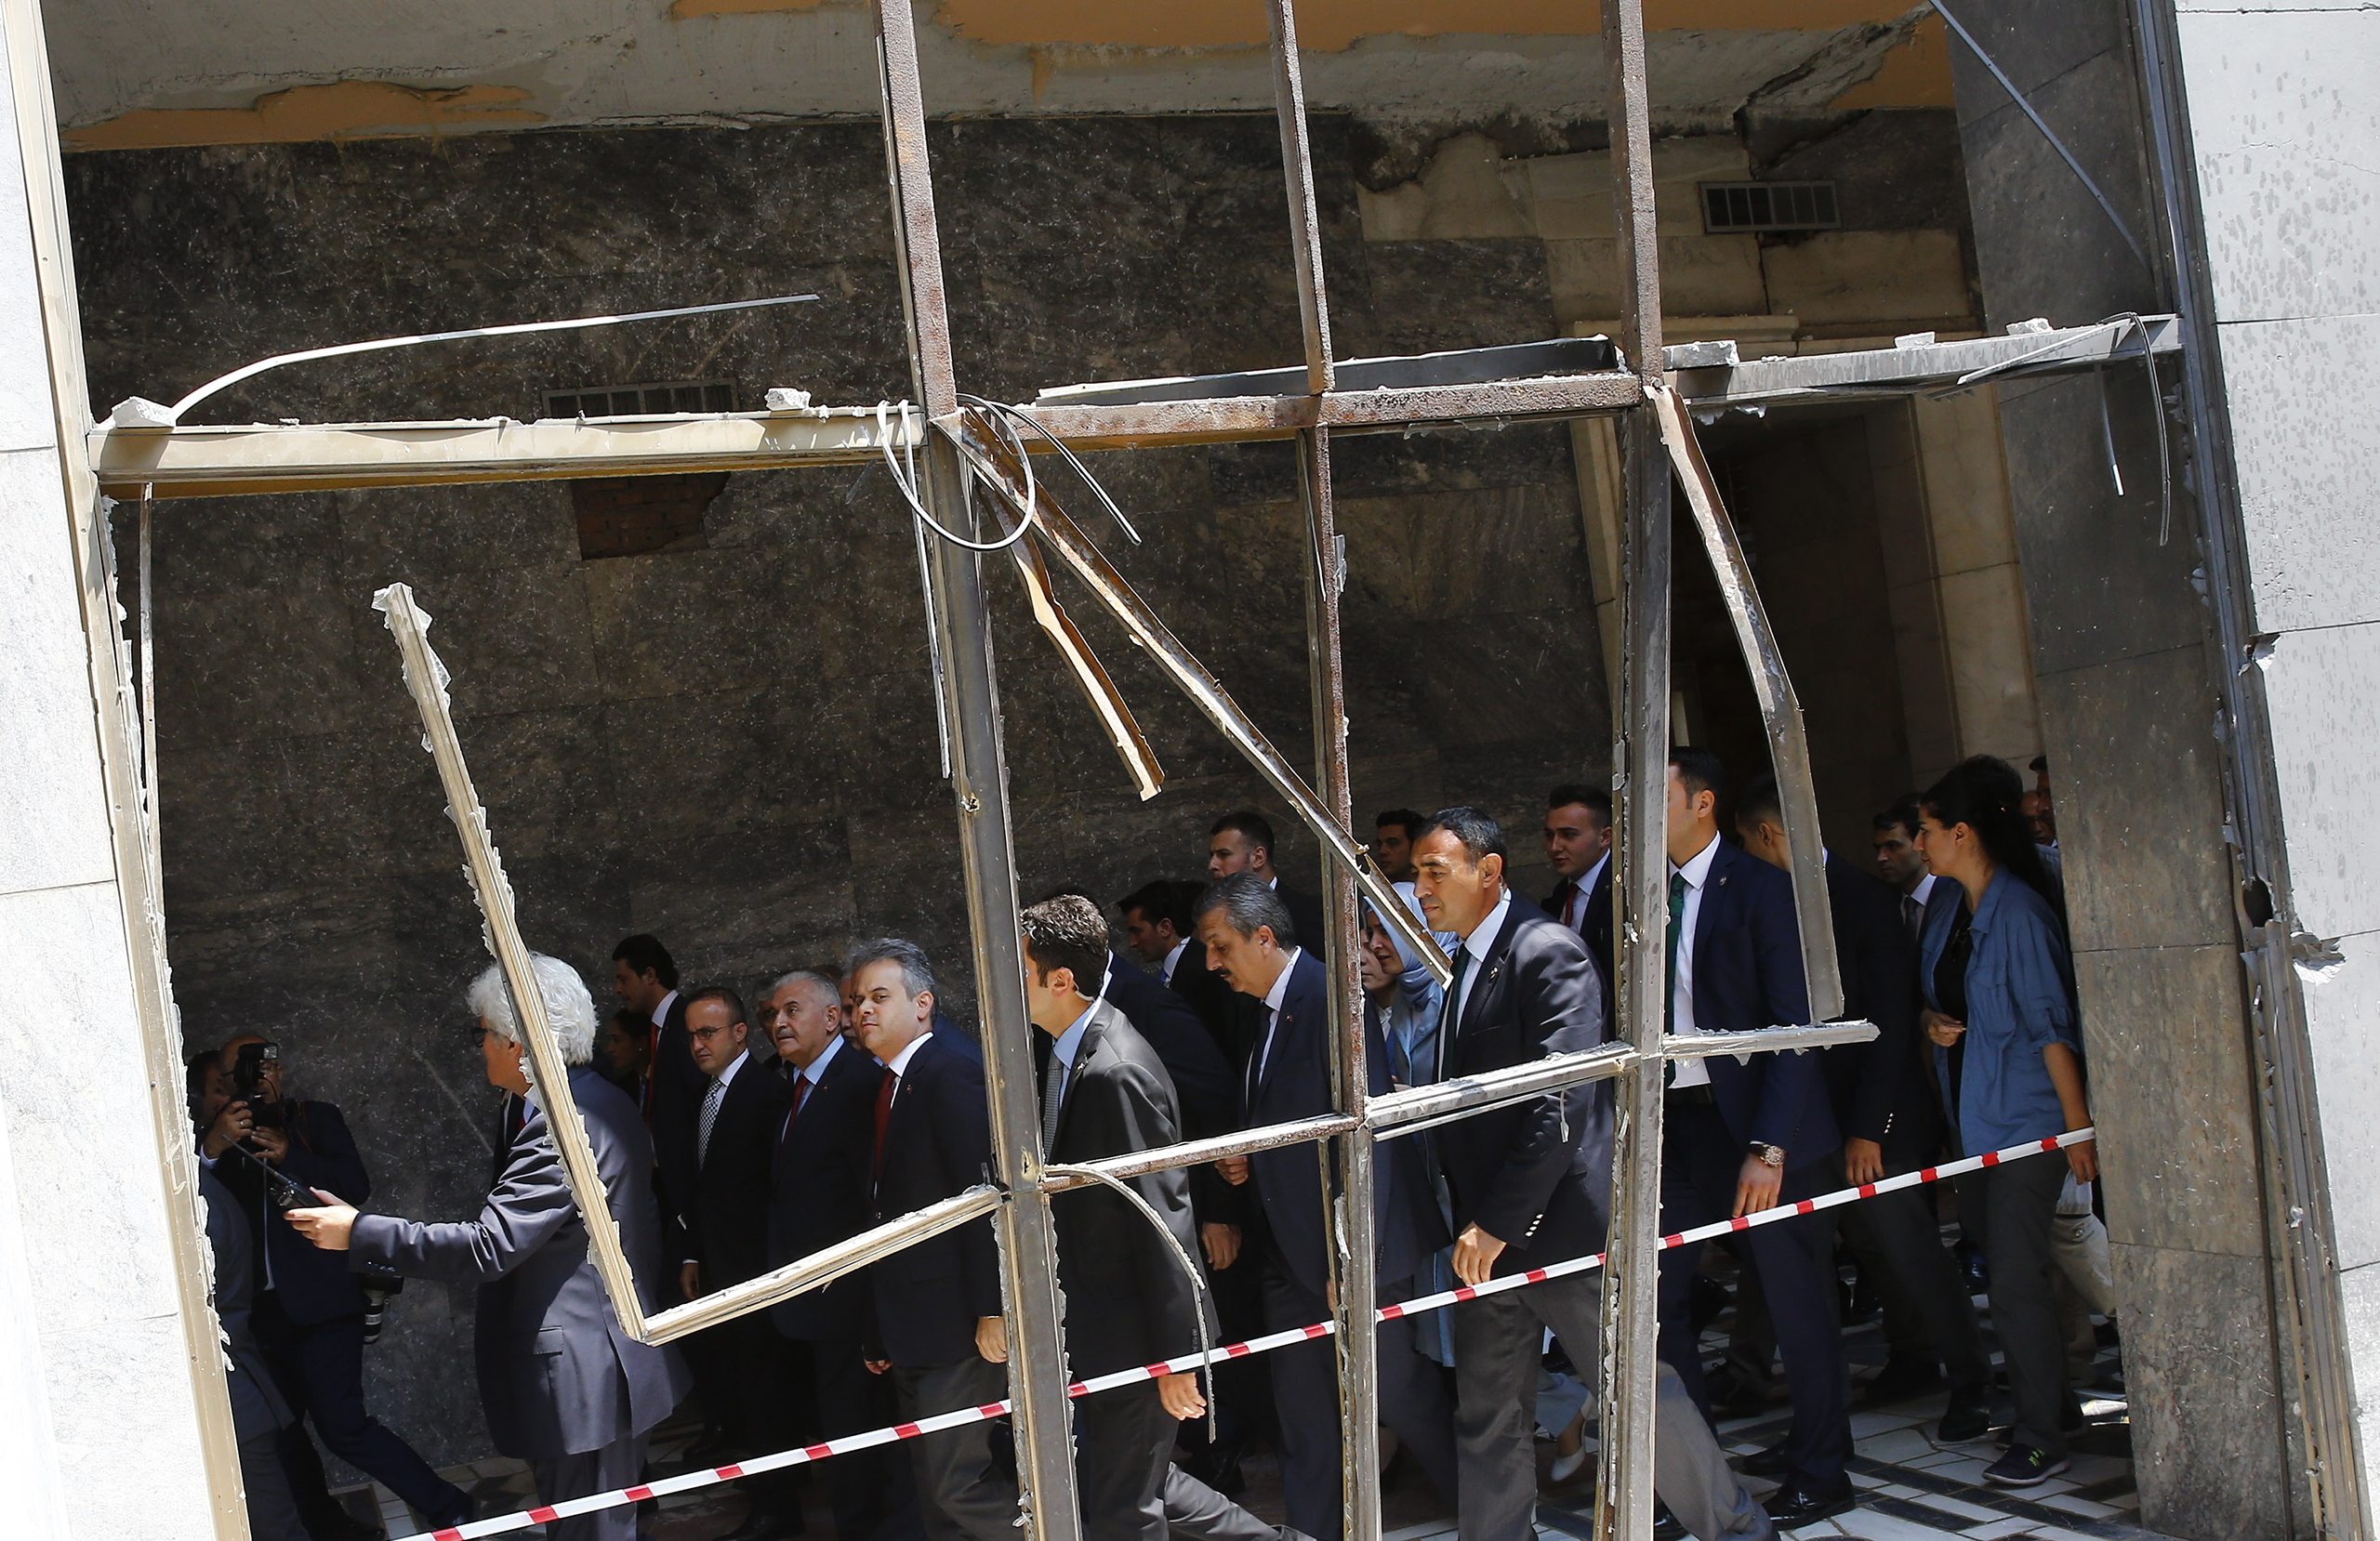 Turkey's Prime Minister Binali Yildrim visits damaged parts of the Turkish parliament in Ankara on July 19, 2016.